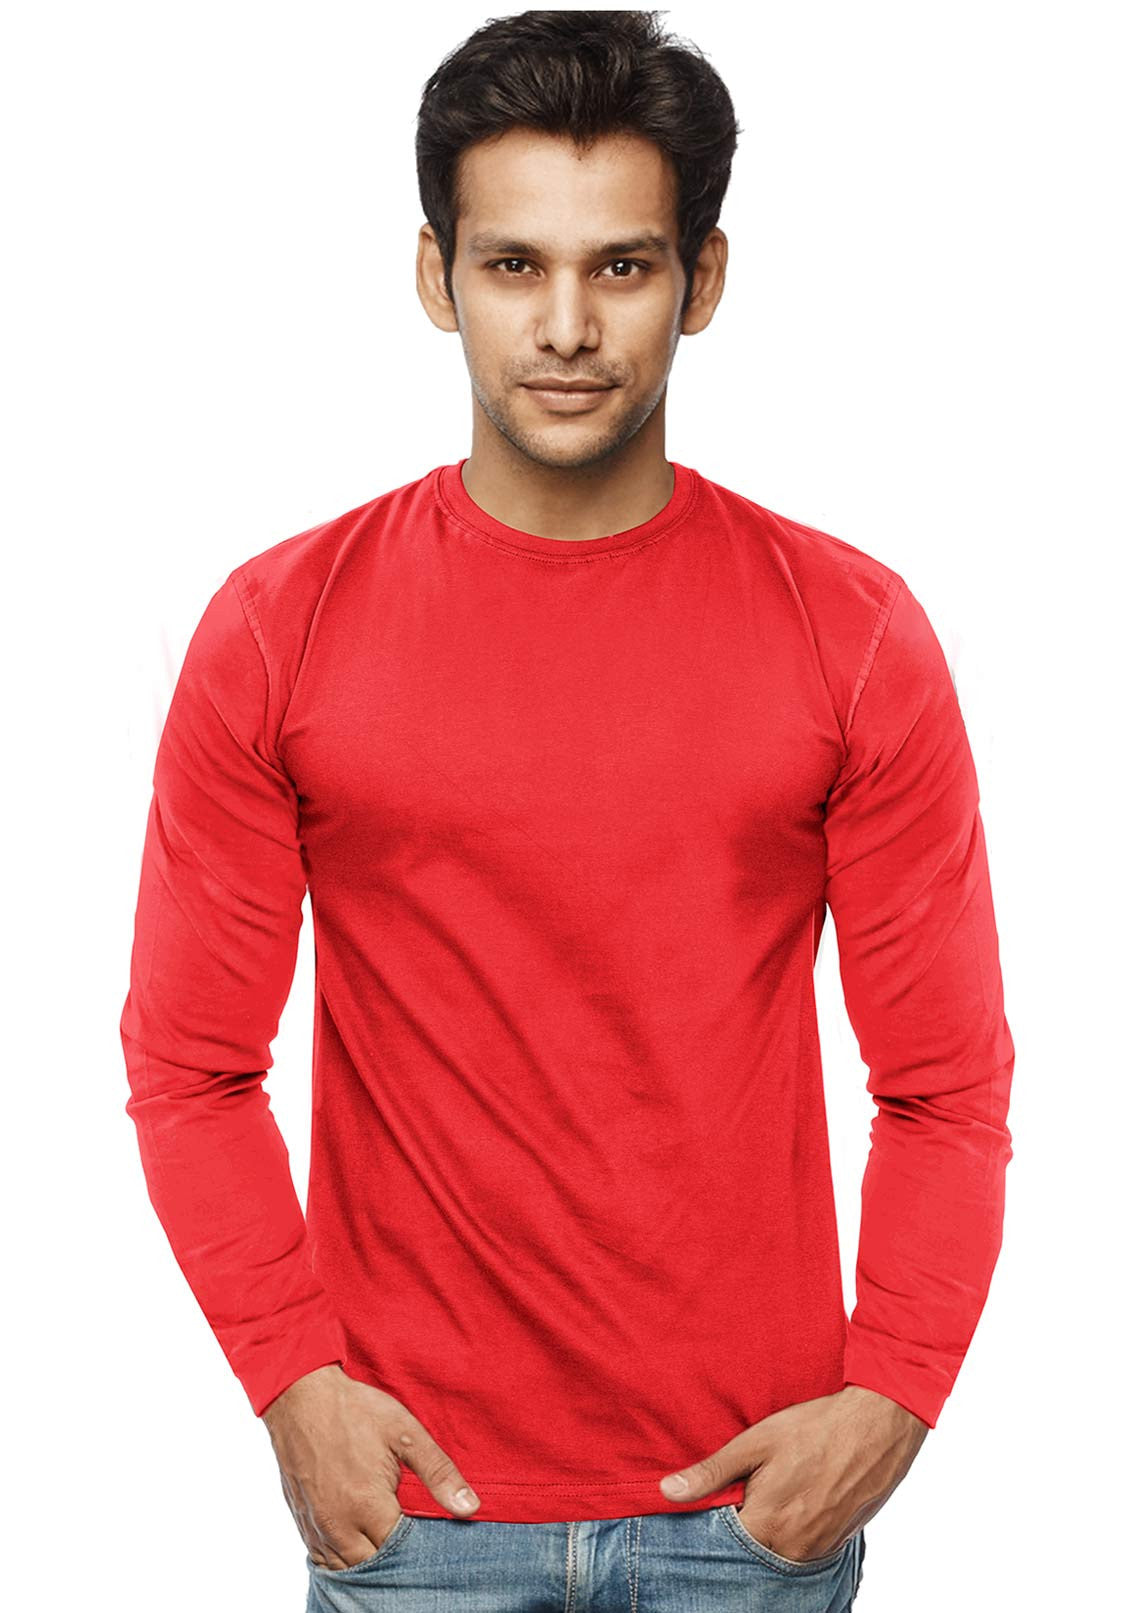 Plain Full Sleeves Tshirt - Red - Wear Your Opinion - WYO.in bf2331555c4